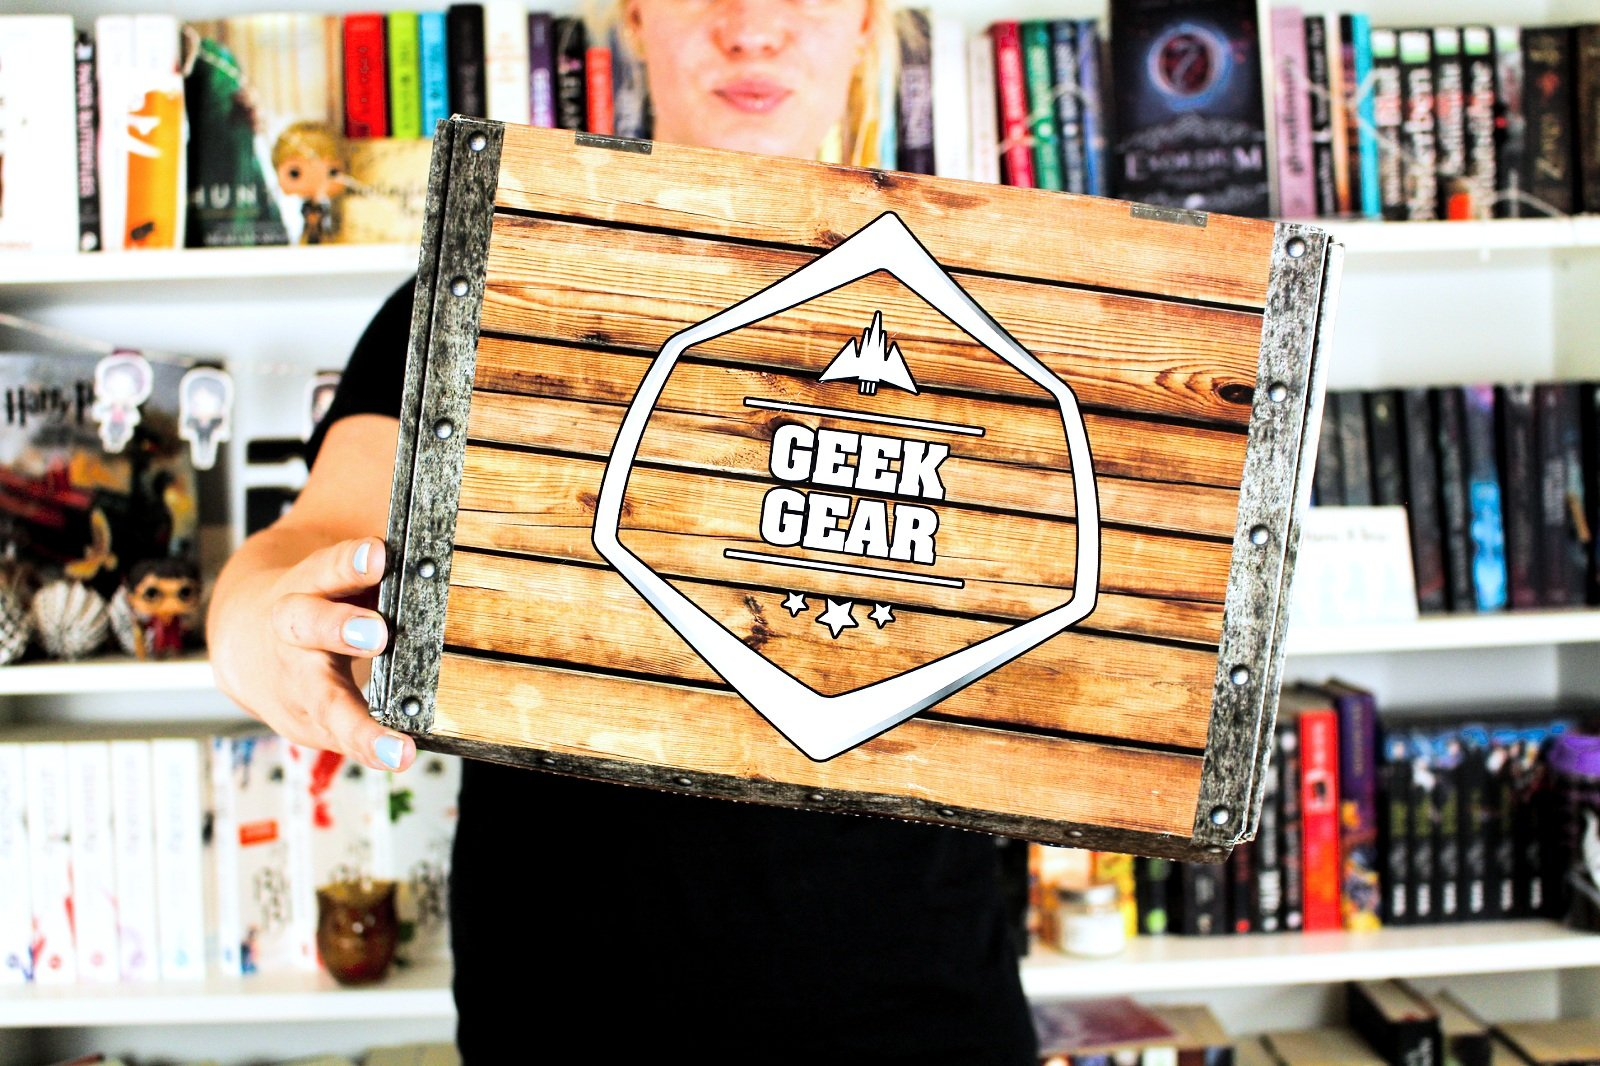 Unpacking: GeekGear Box